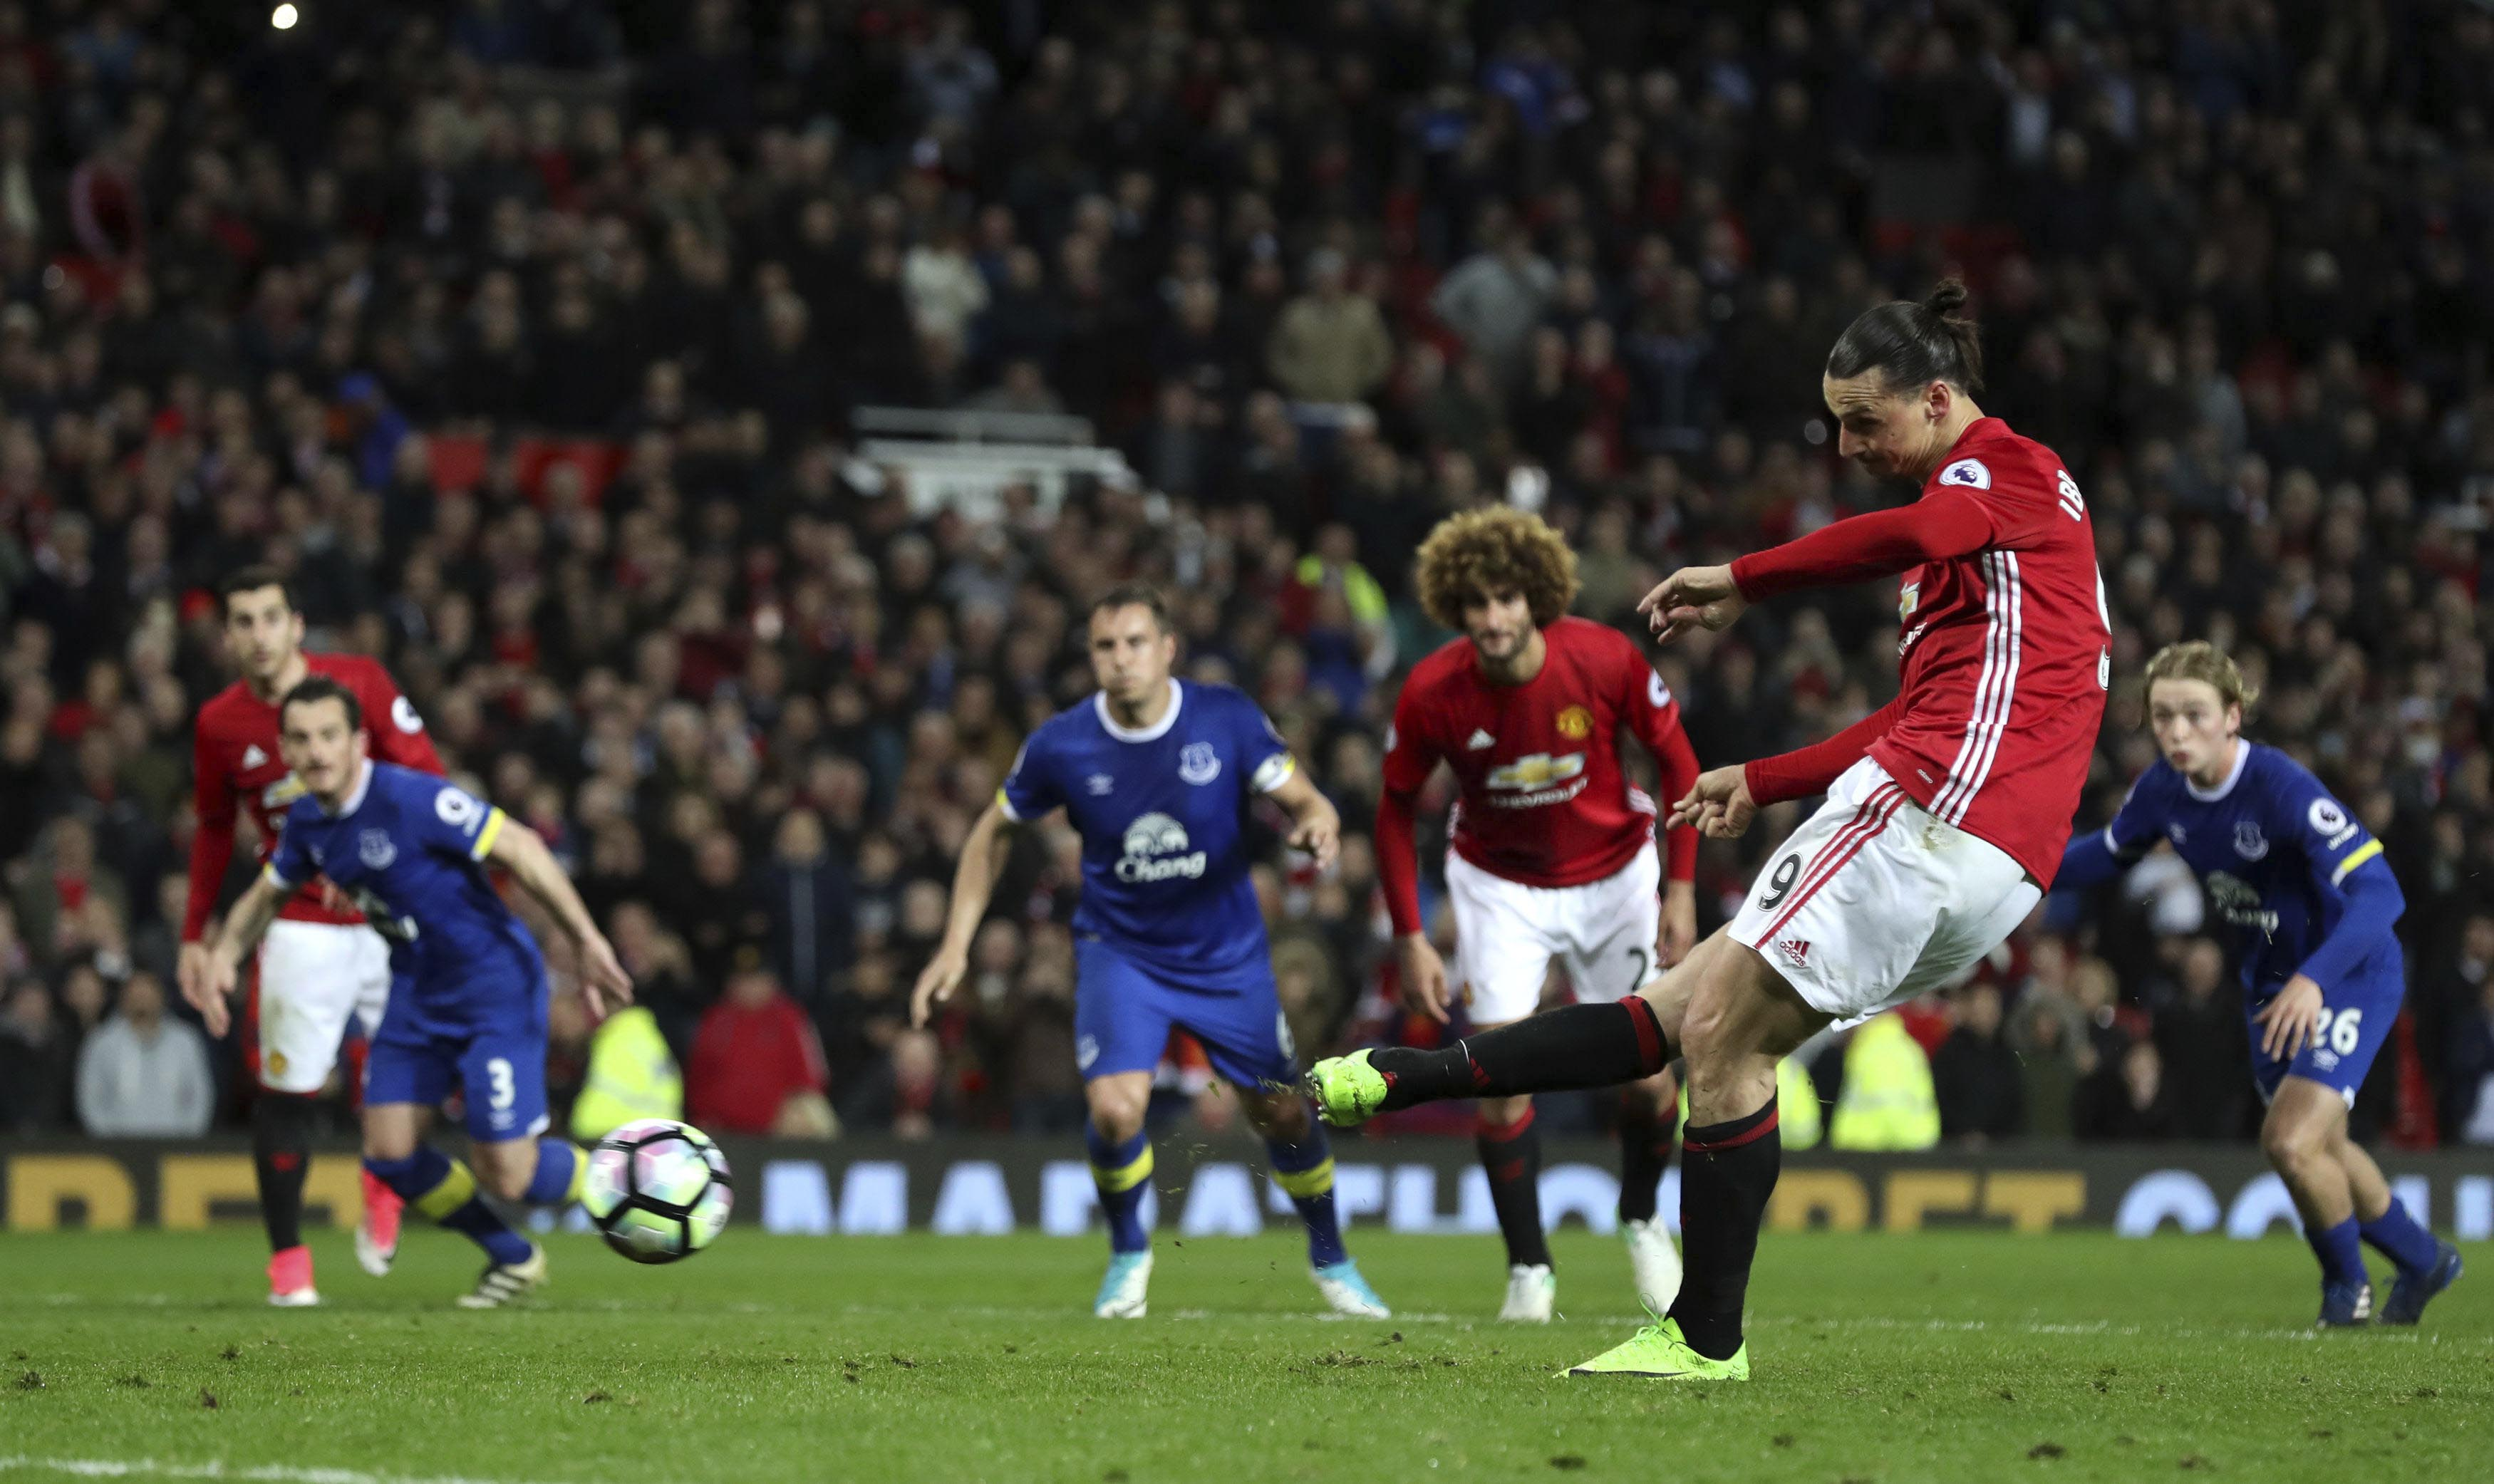 Manchester United's Zlatan Ibrahimovic scores from the penalty spot, against Everton during their English Premier League soccer match between Manchester United and Everton at Old Trafford in Manchester, England, on Tuesday April 4, 2017. Photo: AP